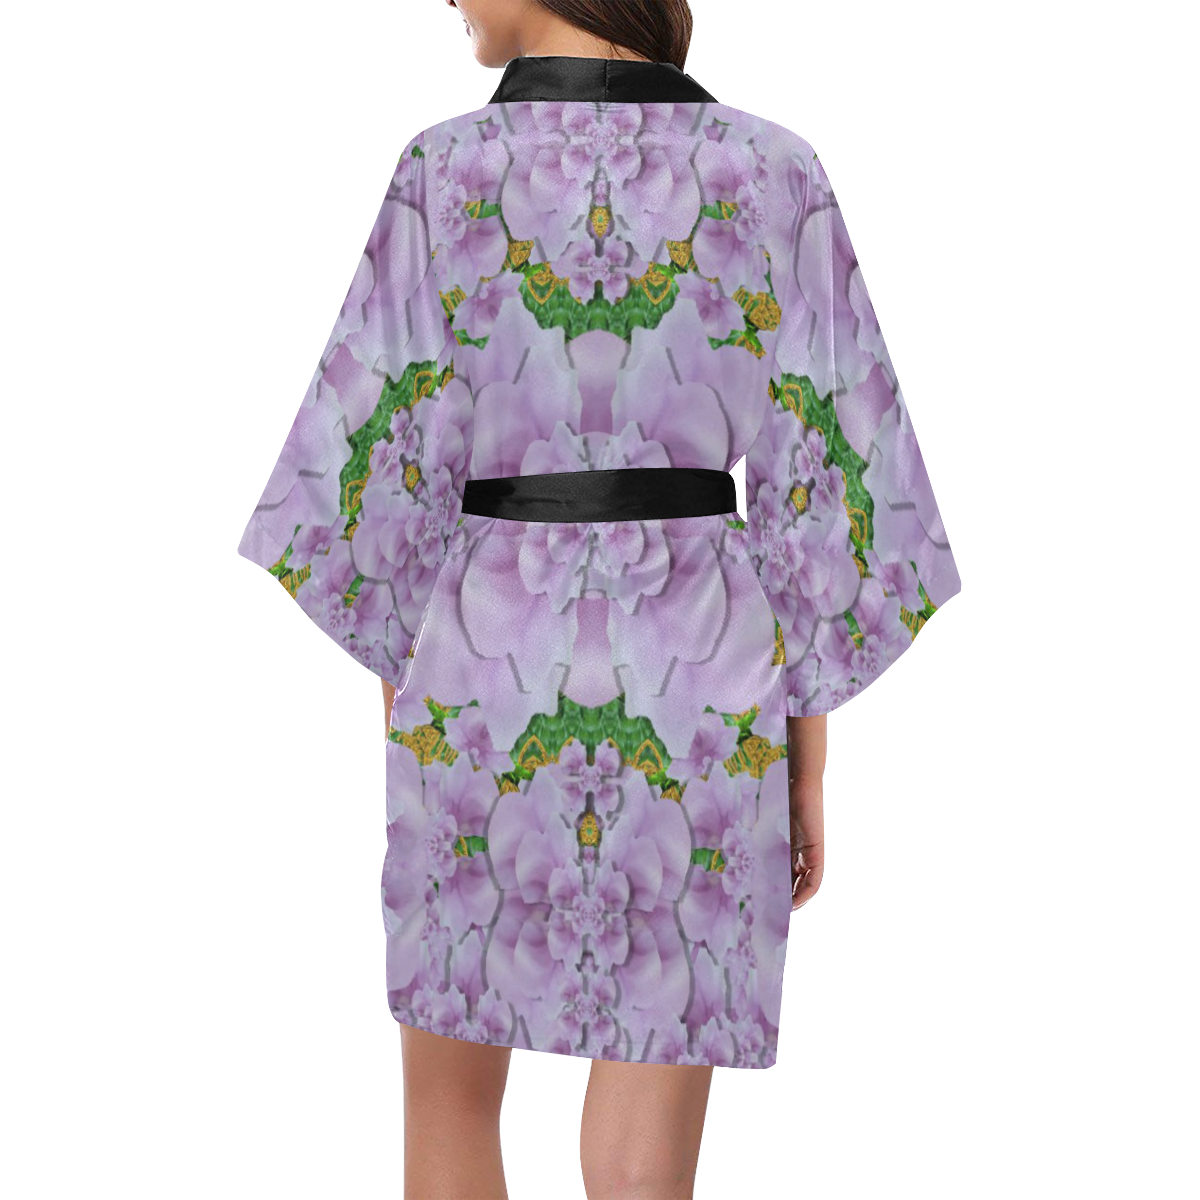 fauna flowers in gold and fern ornate Kimono Robe